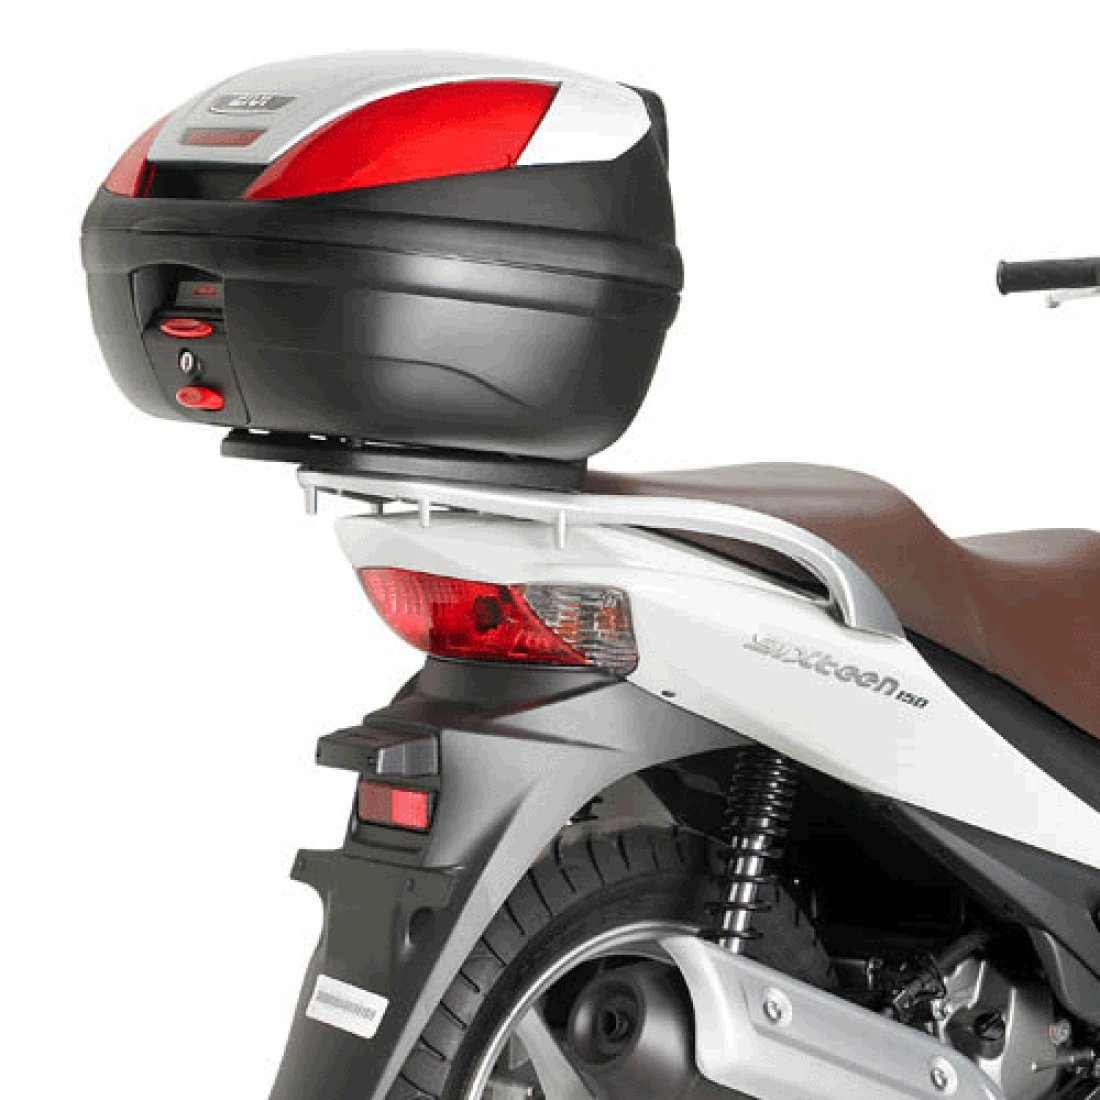 Kit de fixation GIVI E193 UNICA